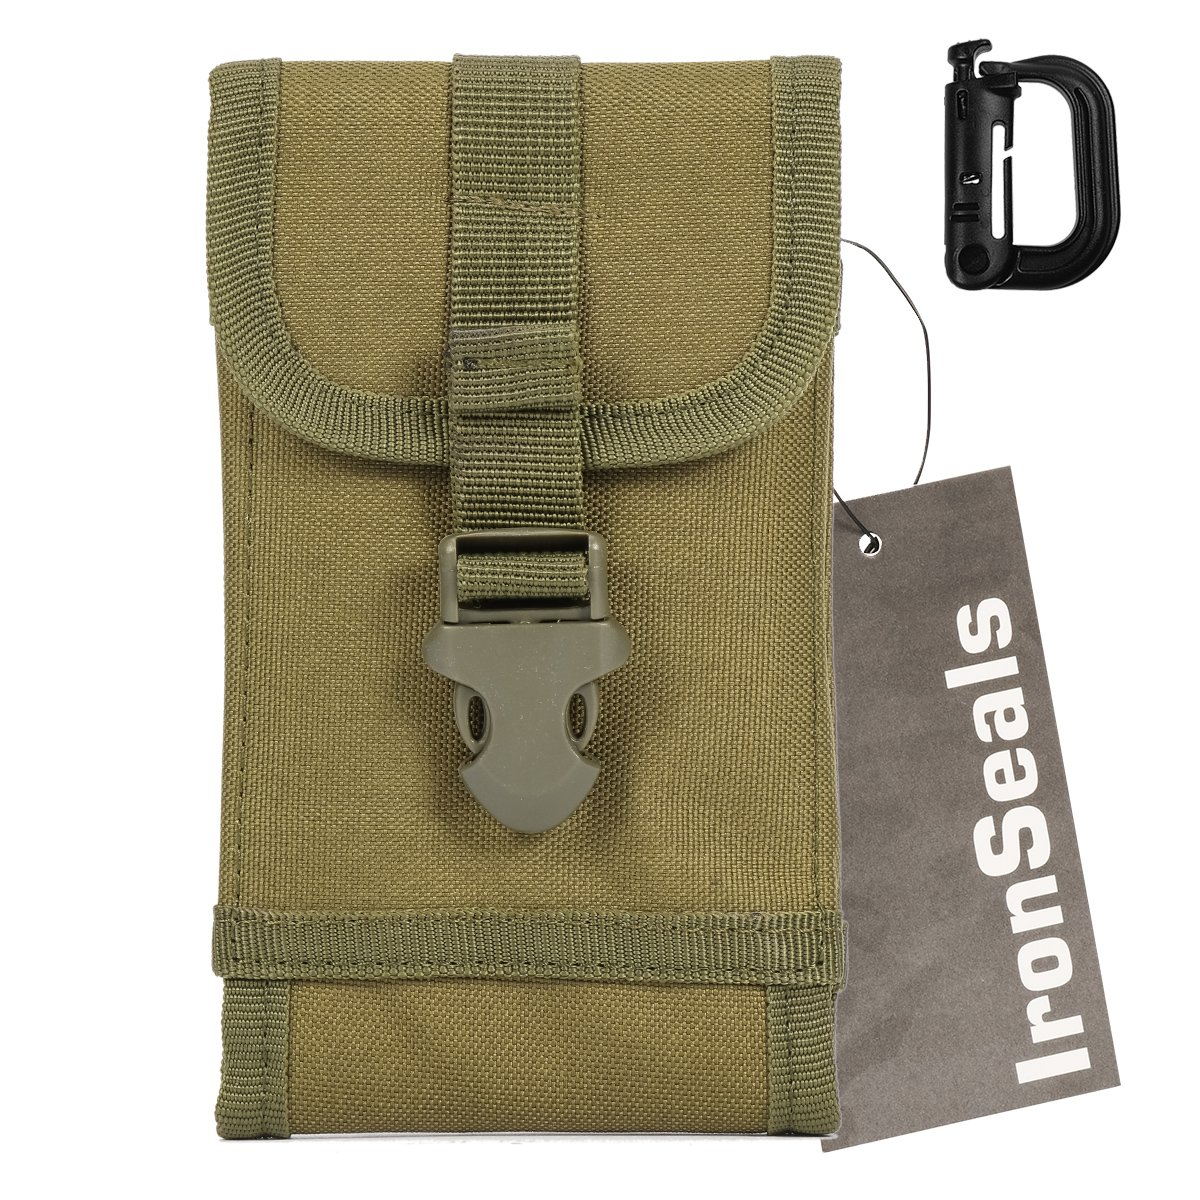 IronSeals Molle Tactical Pouch Compact EDC Utility Gadget Waist Bag Smartphone Holster with Belt Clip for iPhone 11 ProXS max XR XS 8 8+ 7 7+ 6, Samsung S9 S8+ S8 S7 S6 and Other (Bonus: Buckle)